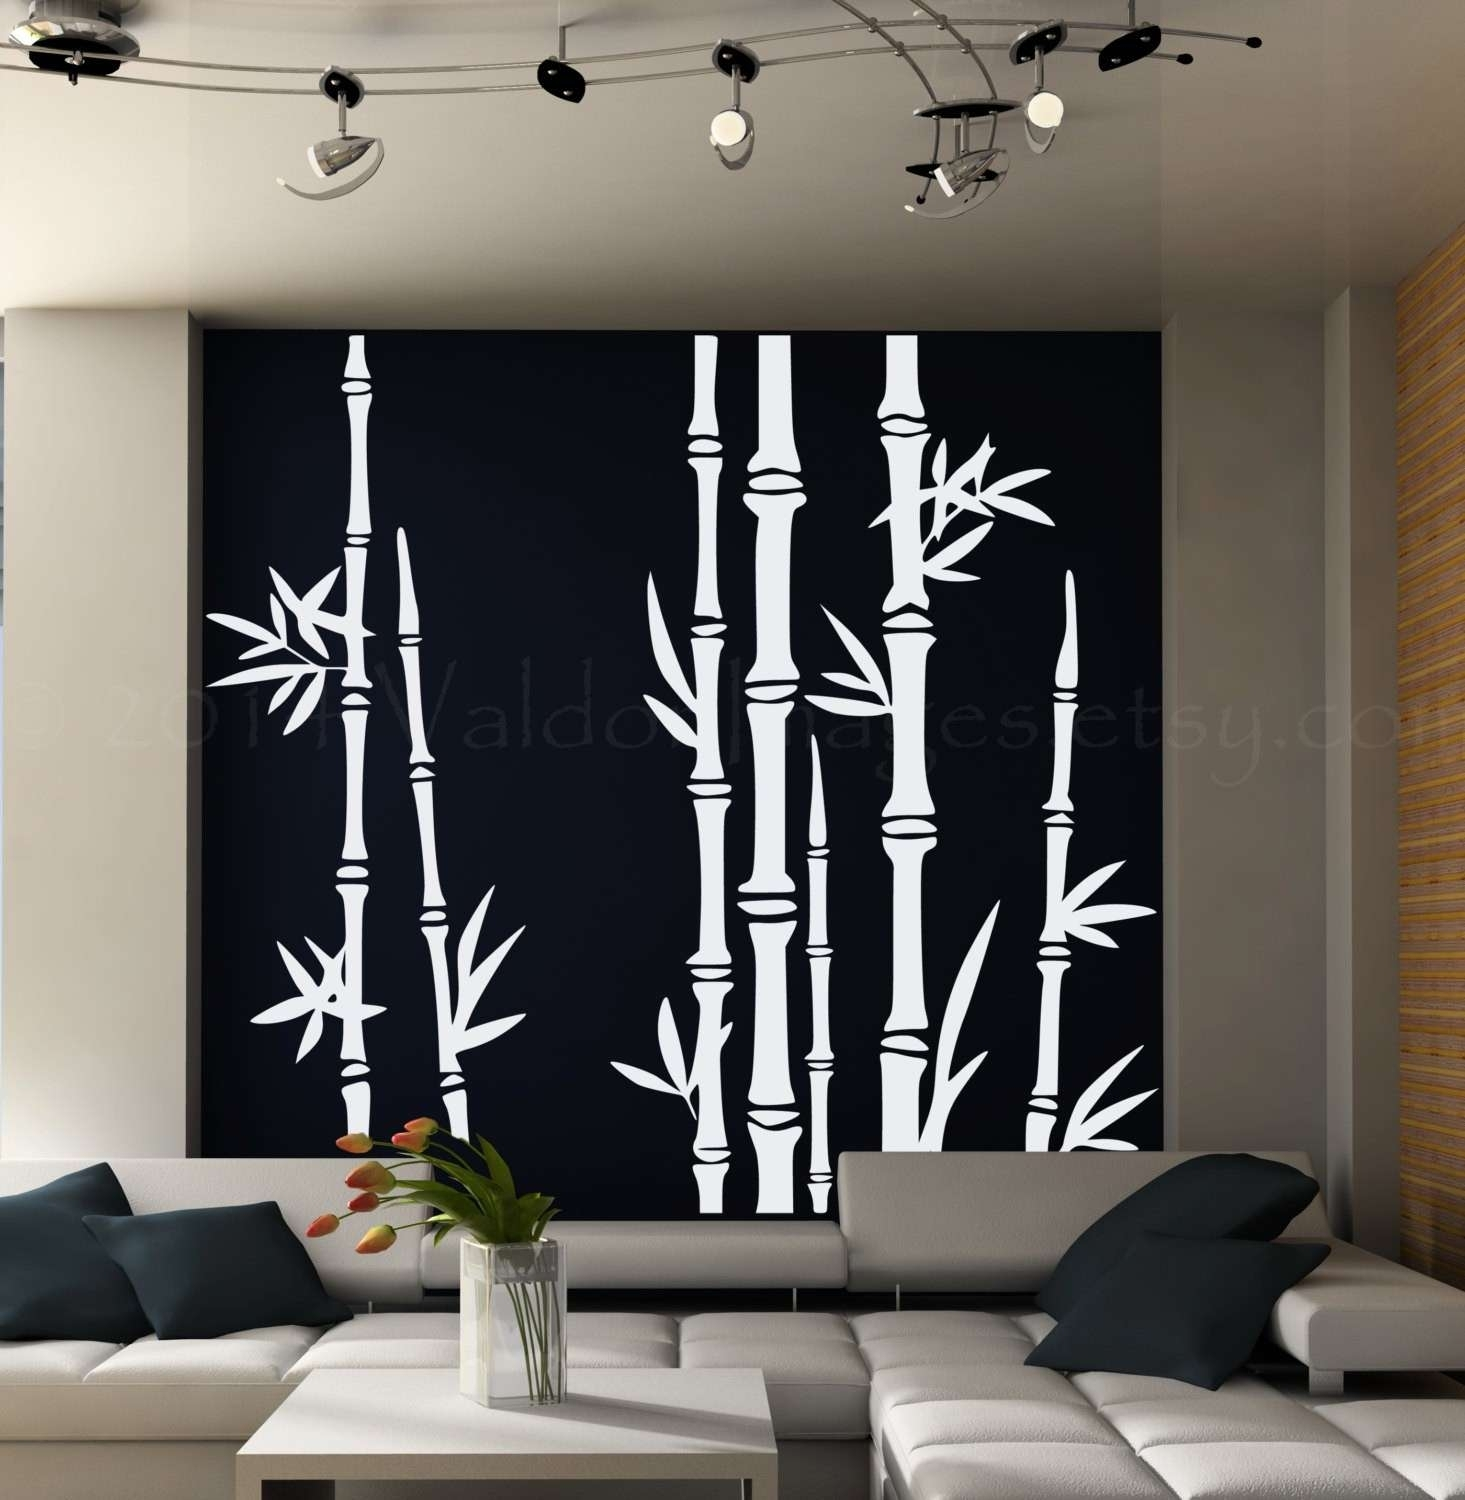 Bamboo Wall Art New Bamboo Wall Decal Asian Art Wall Stickers Lush Throughout Best And Newest Bamboo Wall Art (View 9 of 20)